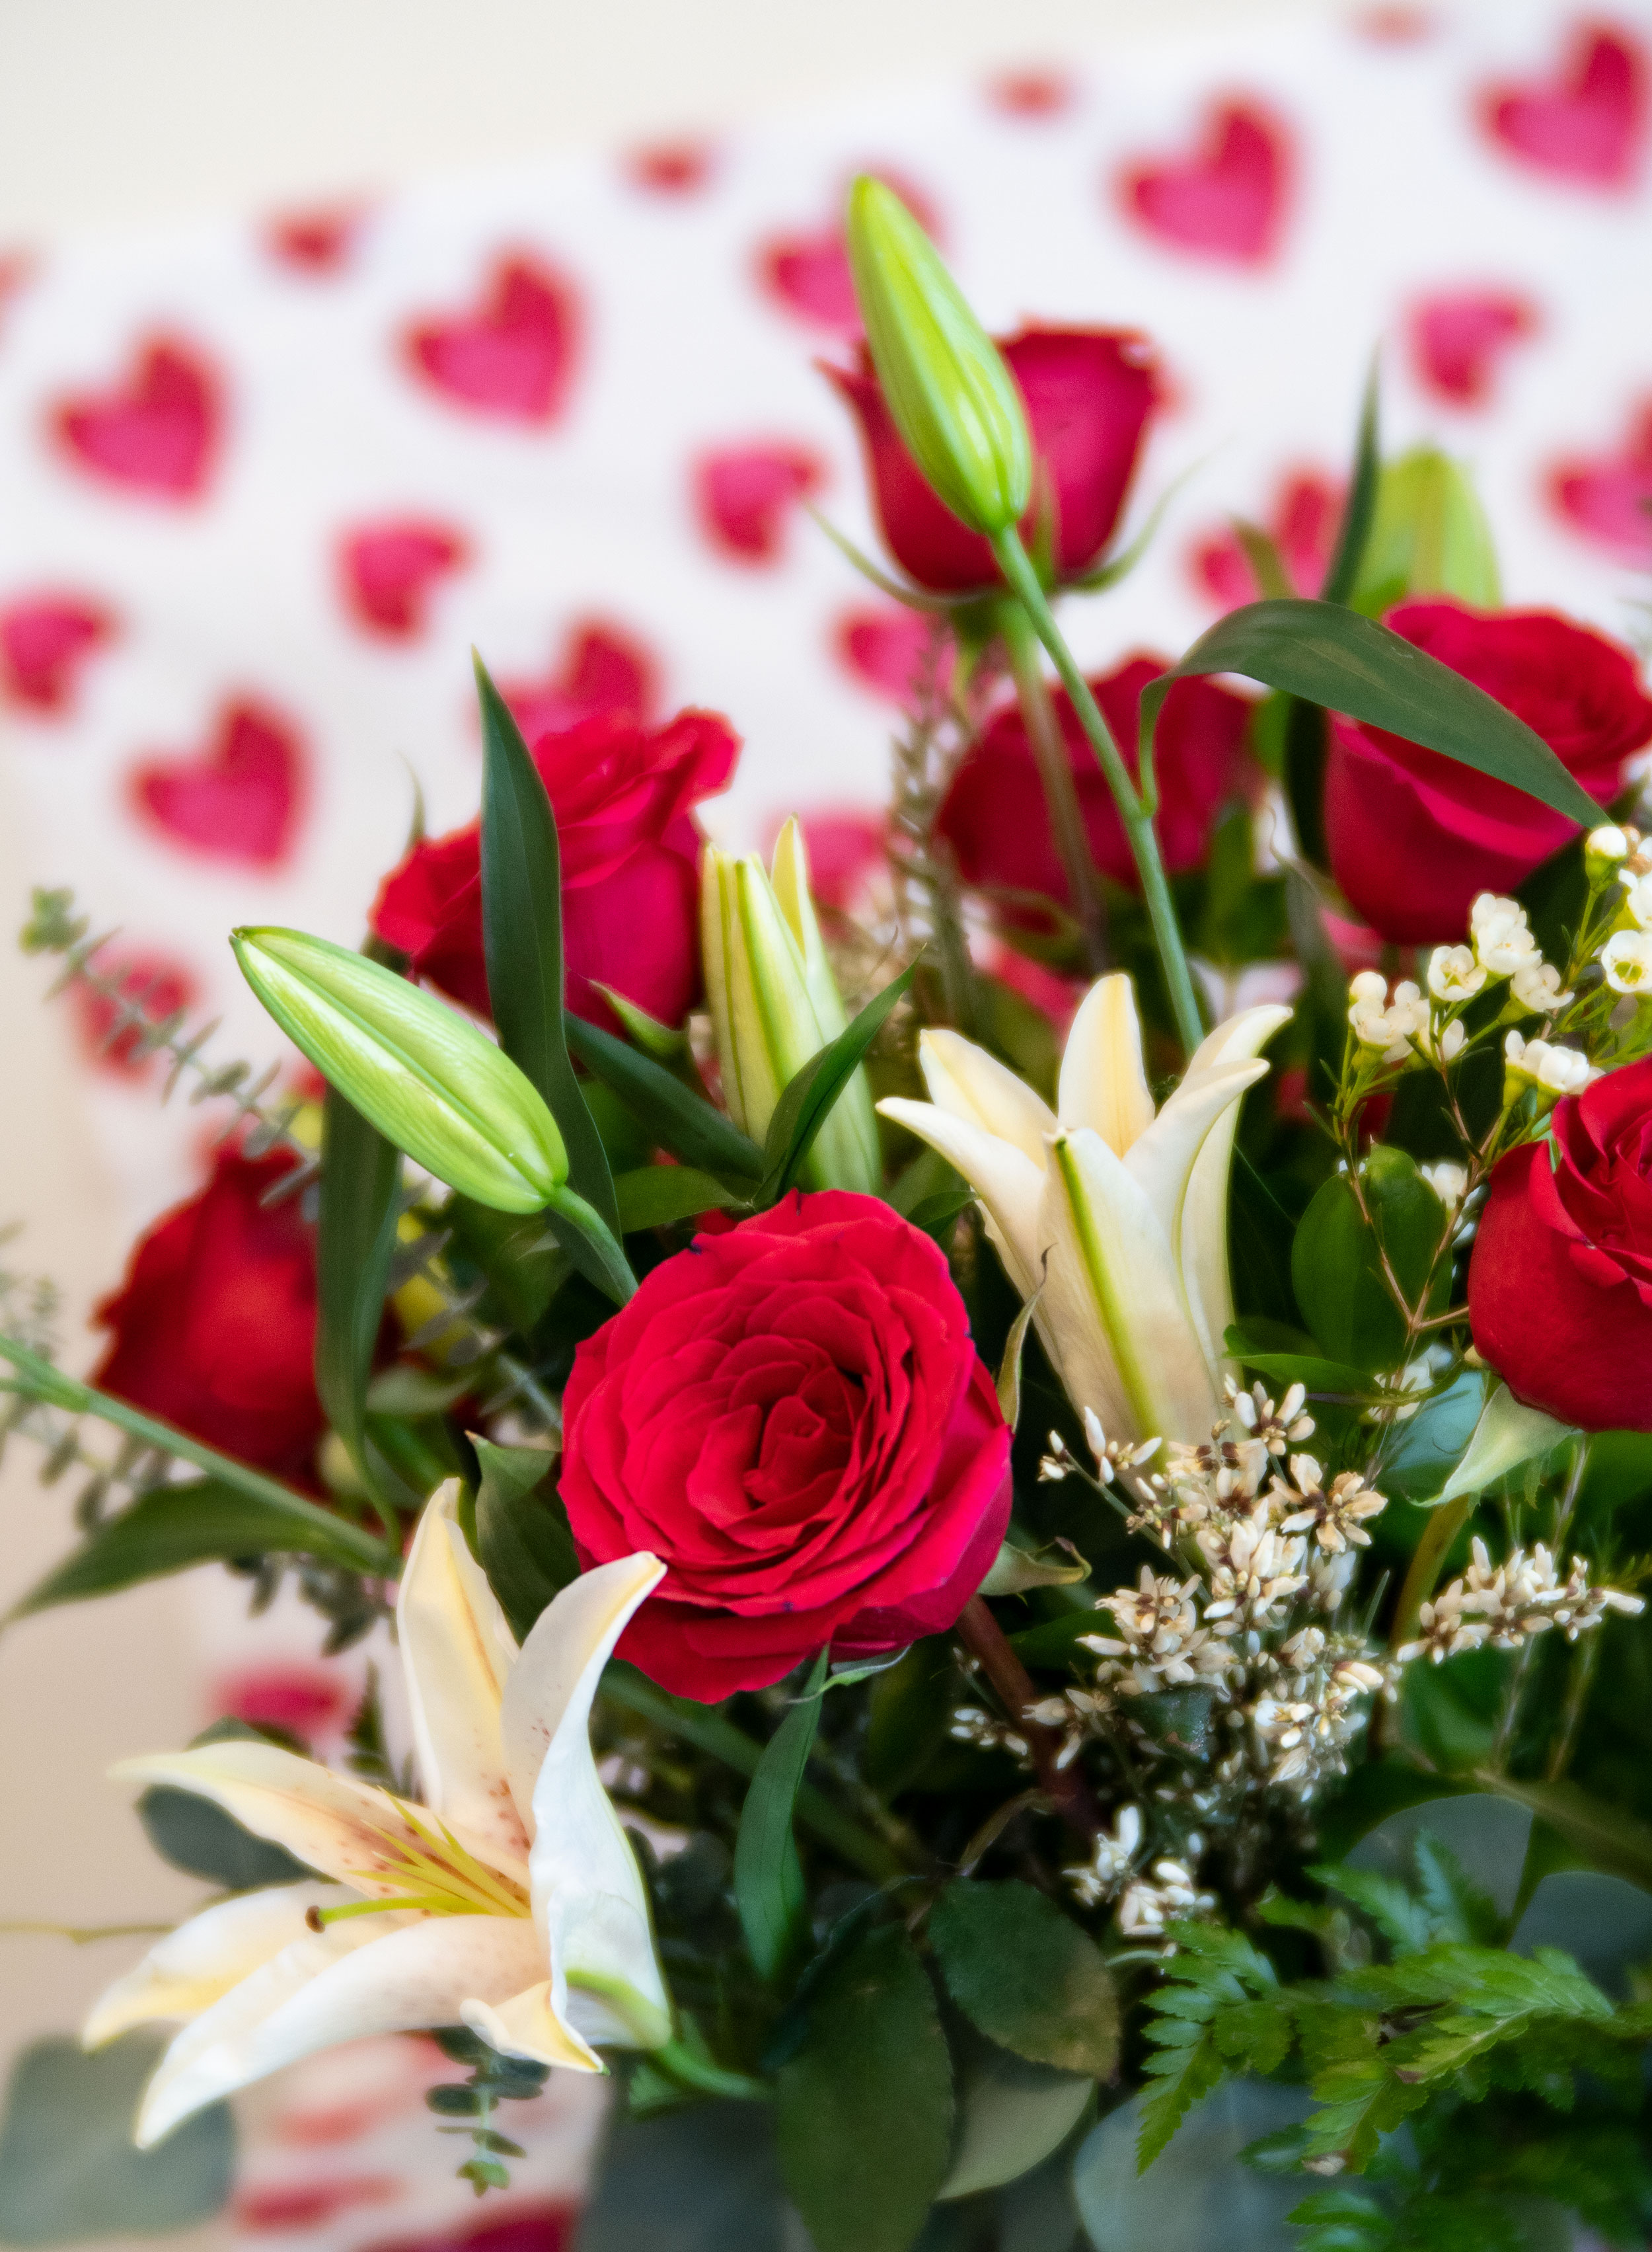 Red Roses & Lillies for Valentine's Day ideas, Durango, Colorado